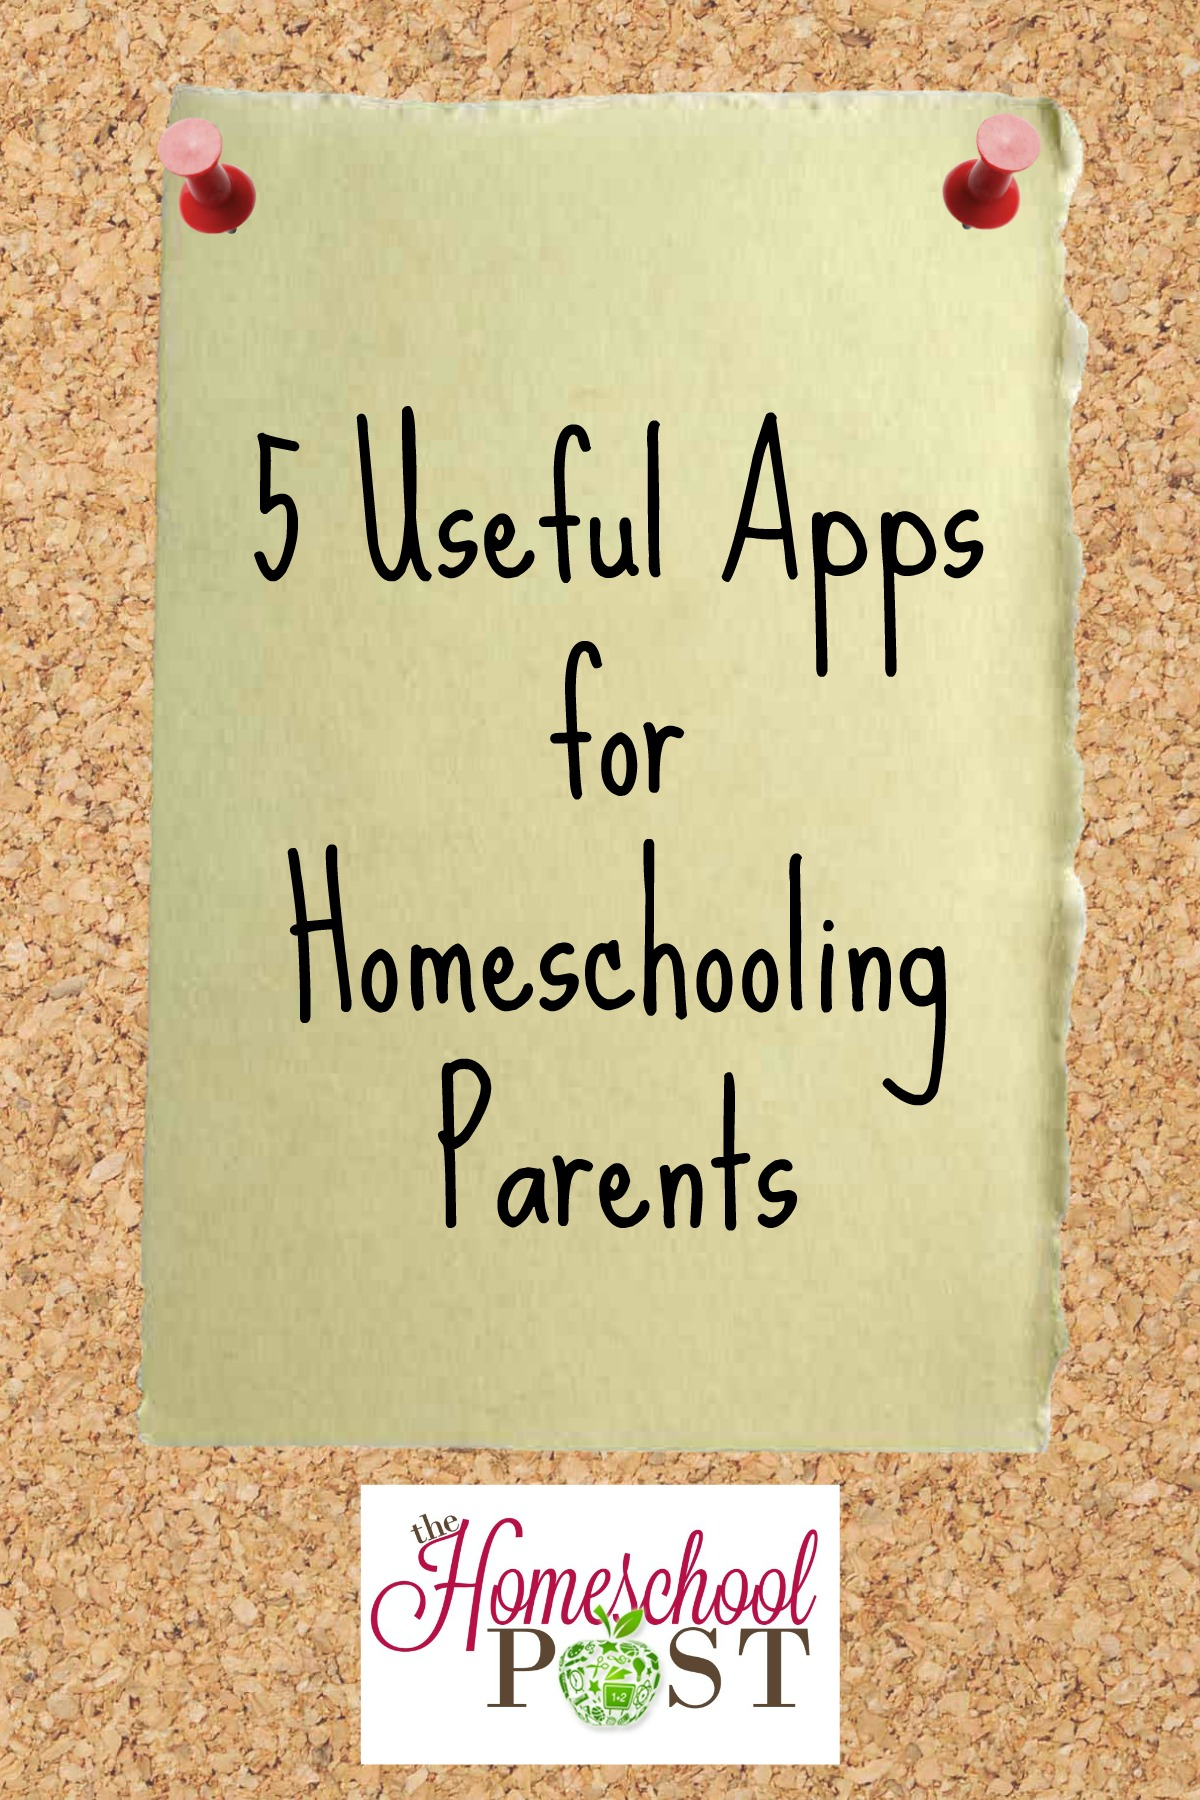 Description of 5 different apps that can help you organize your home and homeschool at hsbapost.com